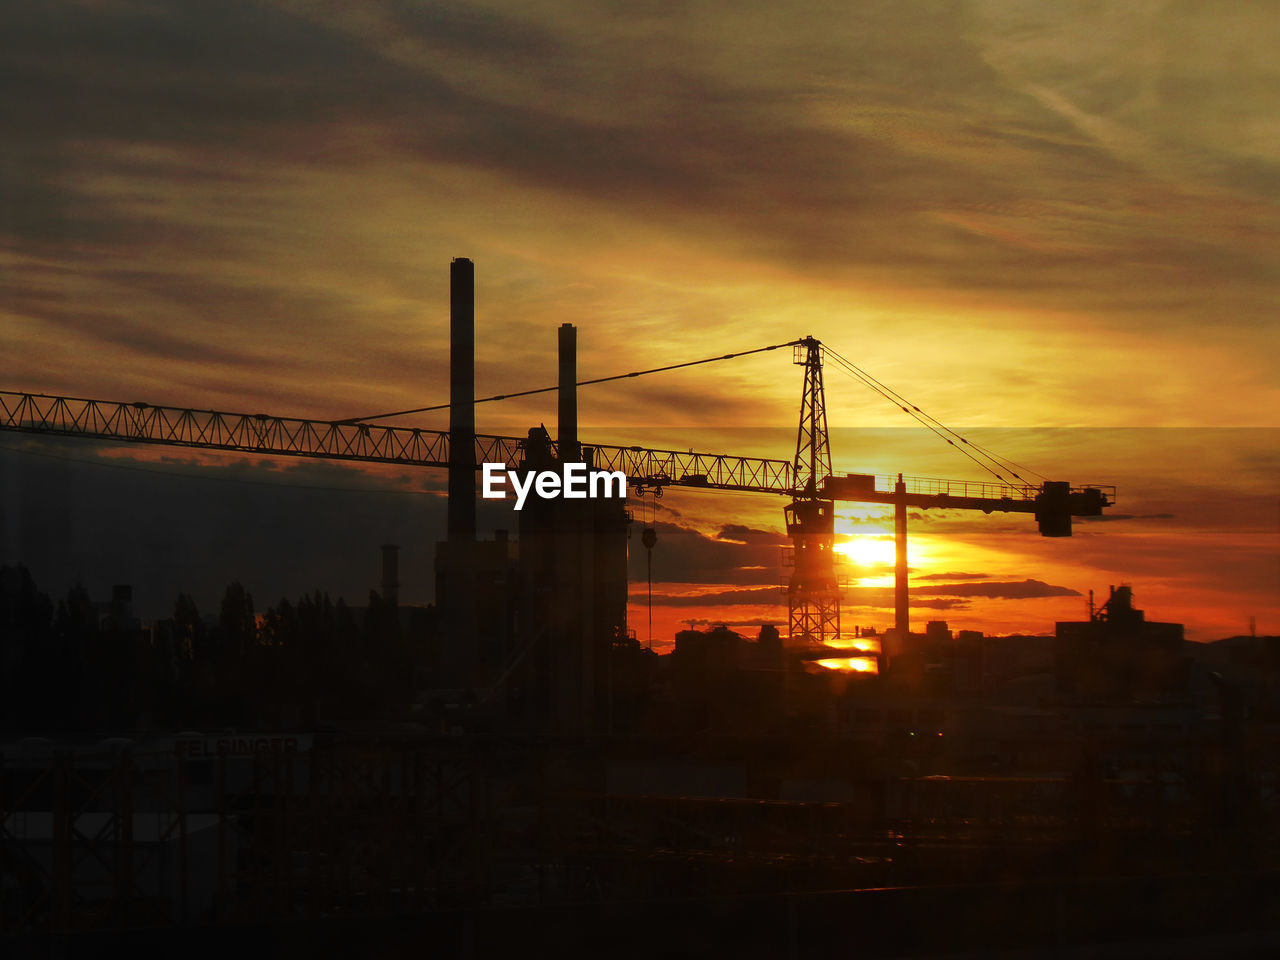 sunset, sky, cloud - sky, industry, orange color, built structure, construction site, machinery, construction industry, architecture, silhouette, nature, crane - construction machinery, sun, no people, development, building exterior, outdoors, incomplete, beauty in nature, construction equipment